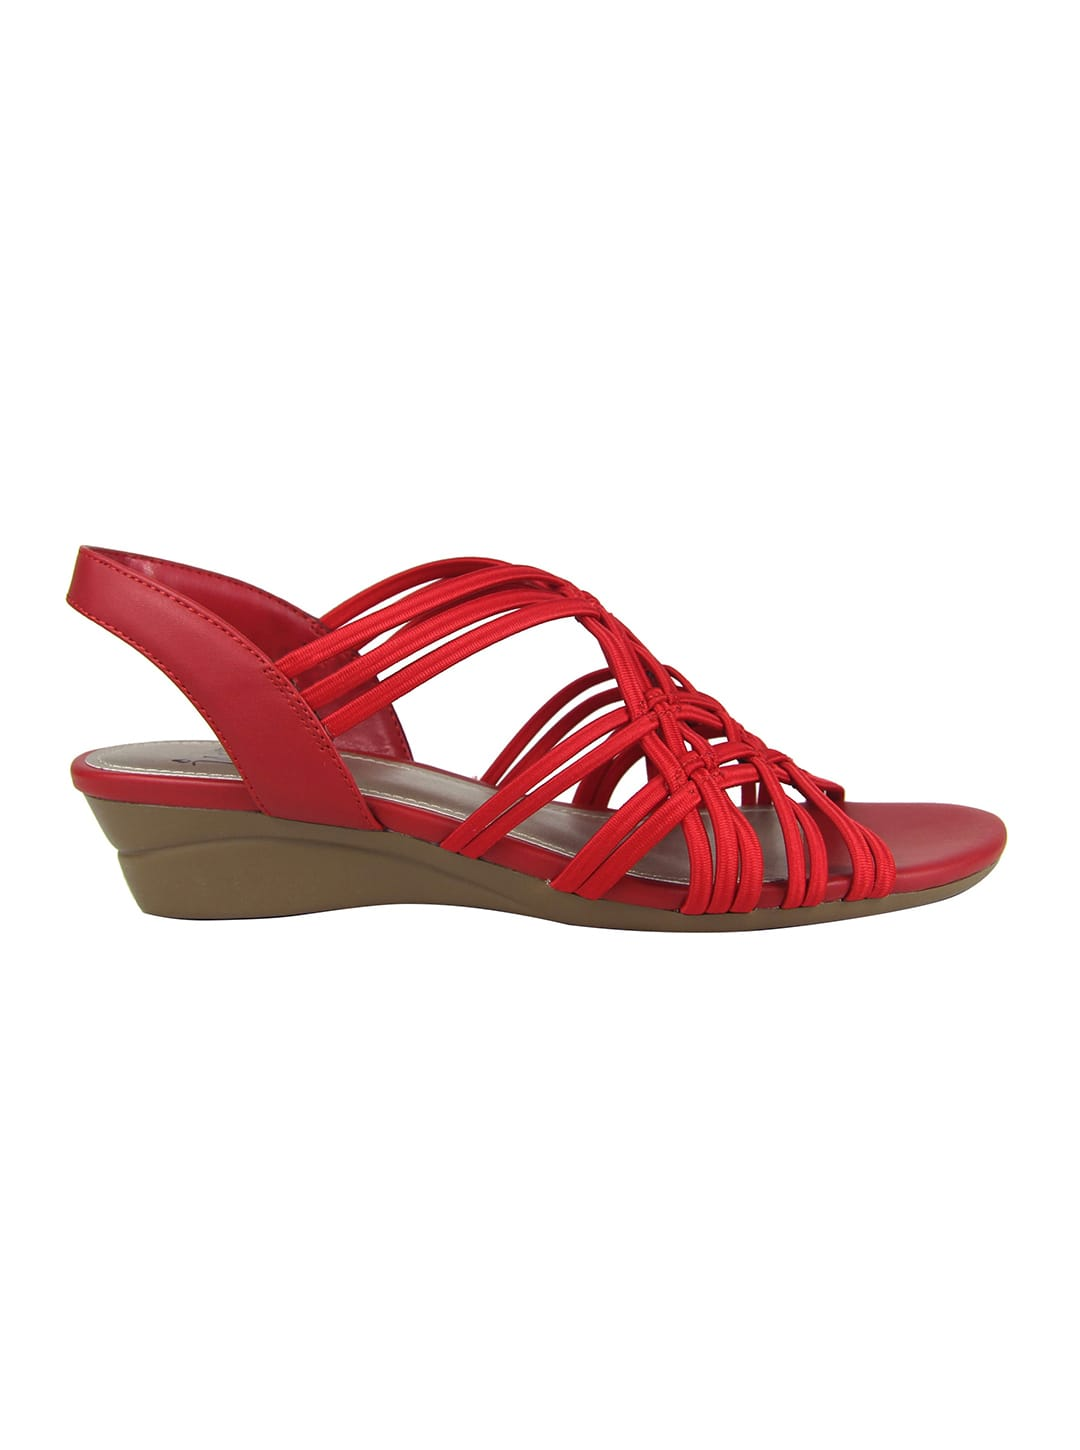 Impo Rainelle Wedge Sandal - classic red - Back